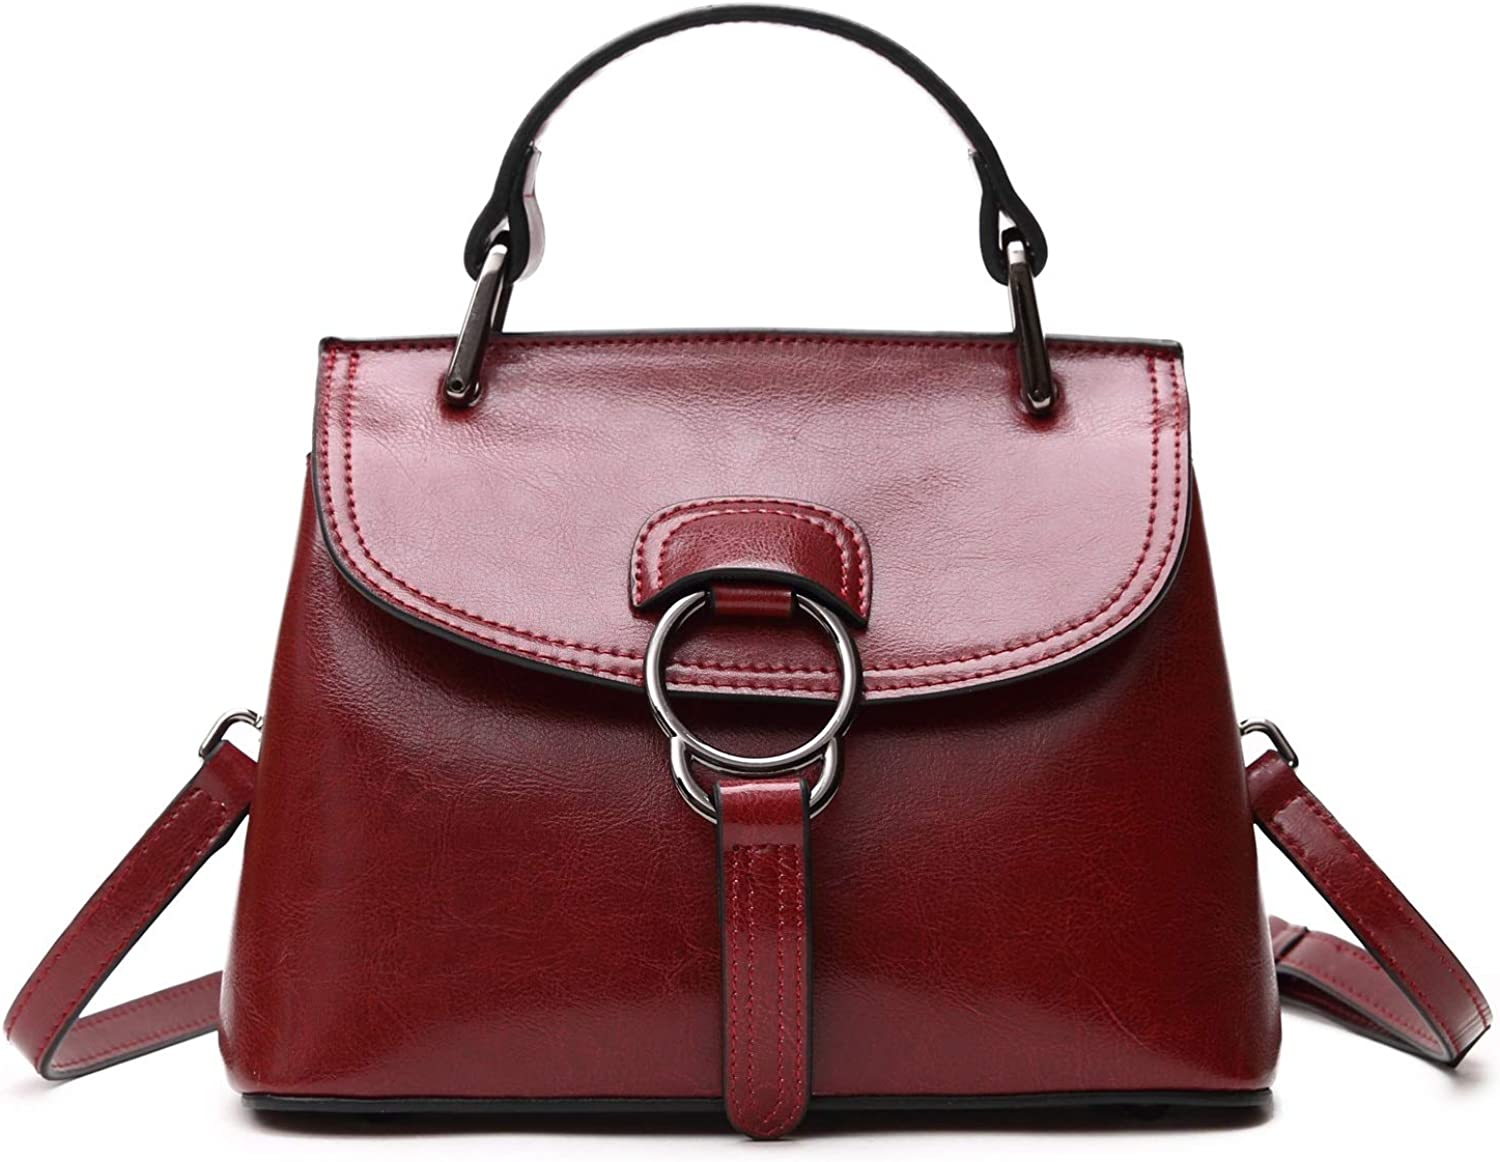 HYF Women Purses and Handbags for Women Fashion Shoulder Tote Bags Purse (color   Red, Size   Onesize)